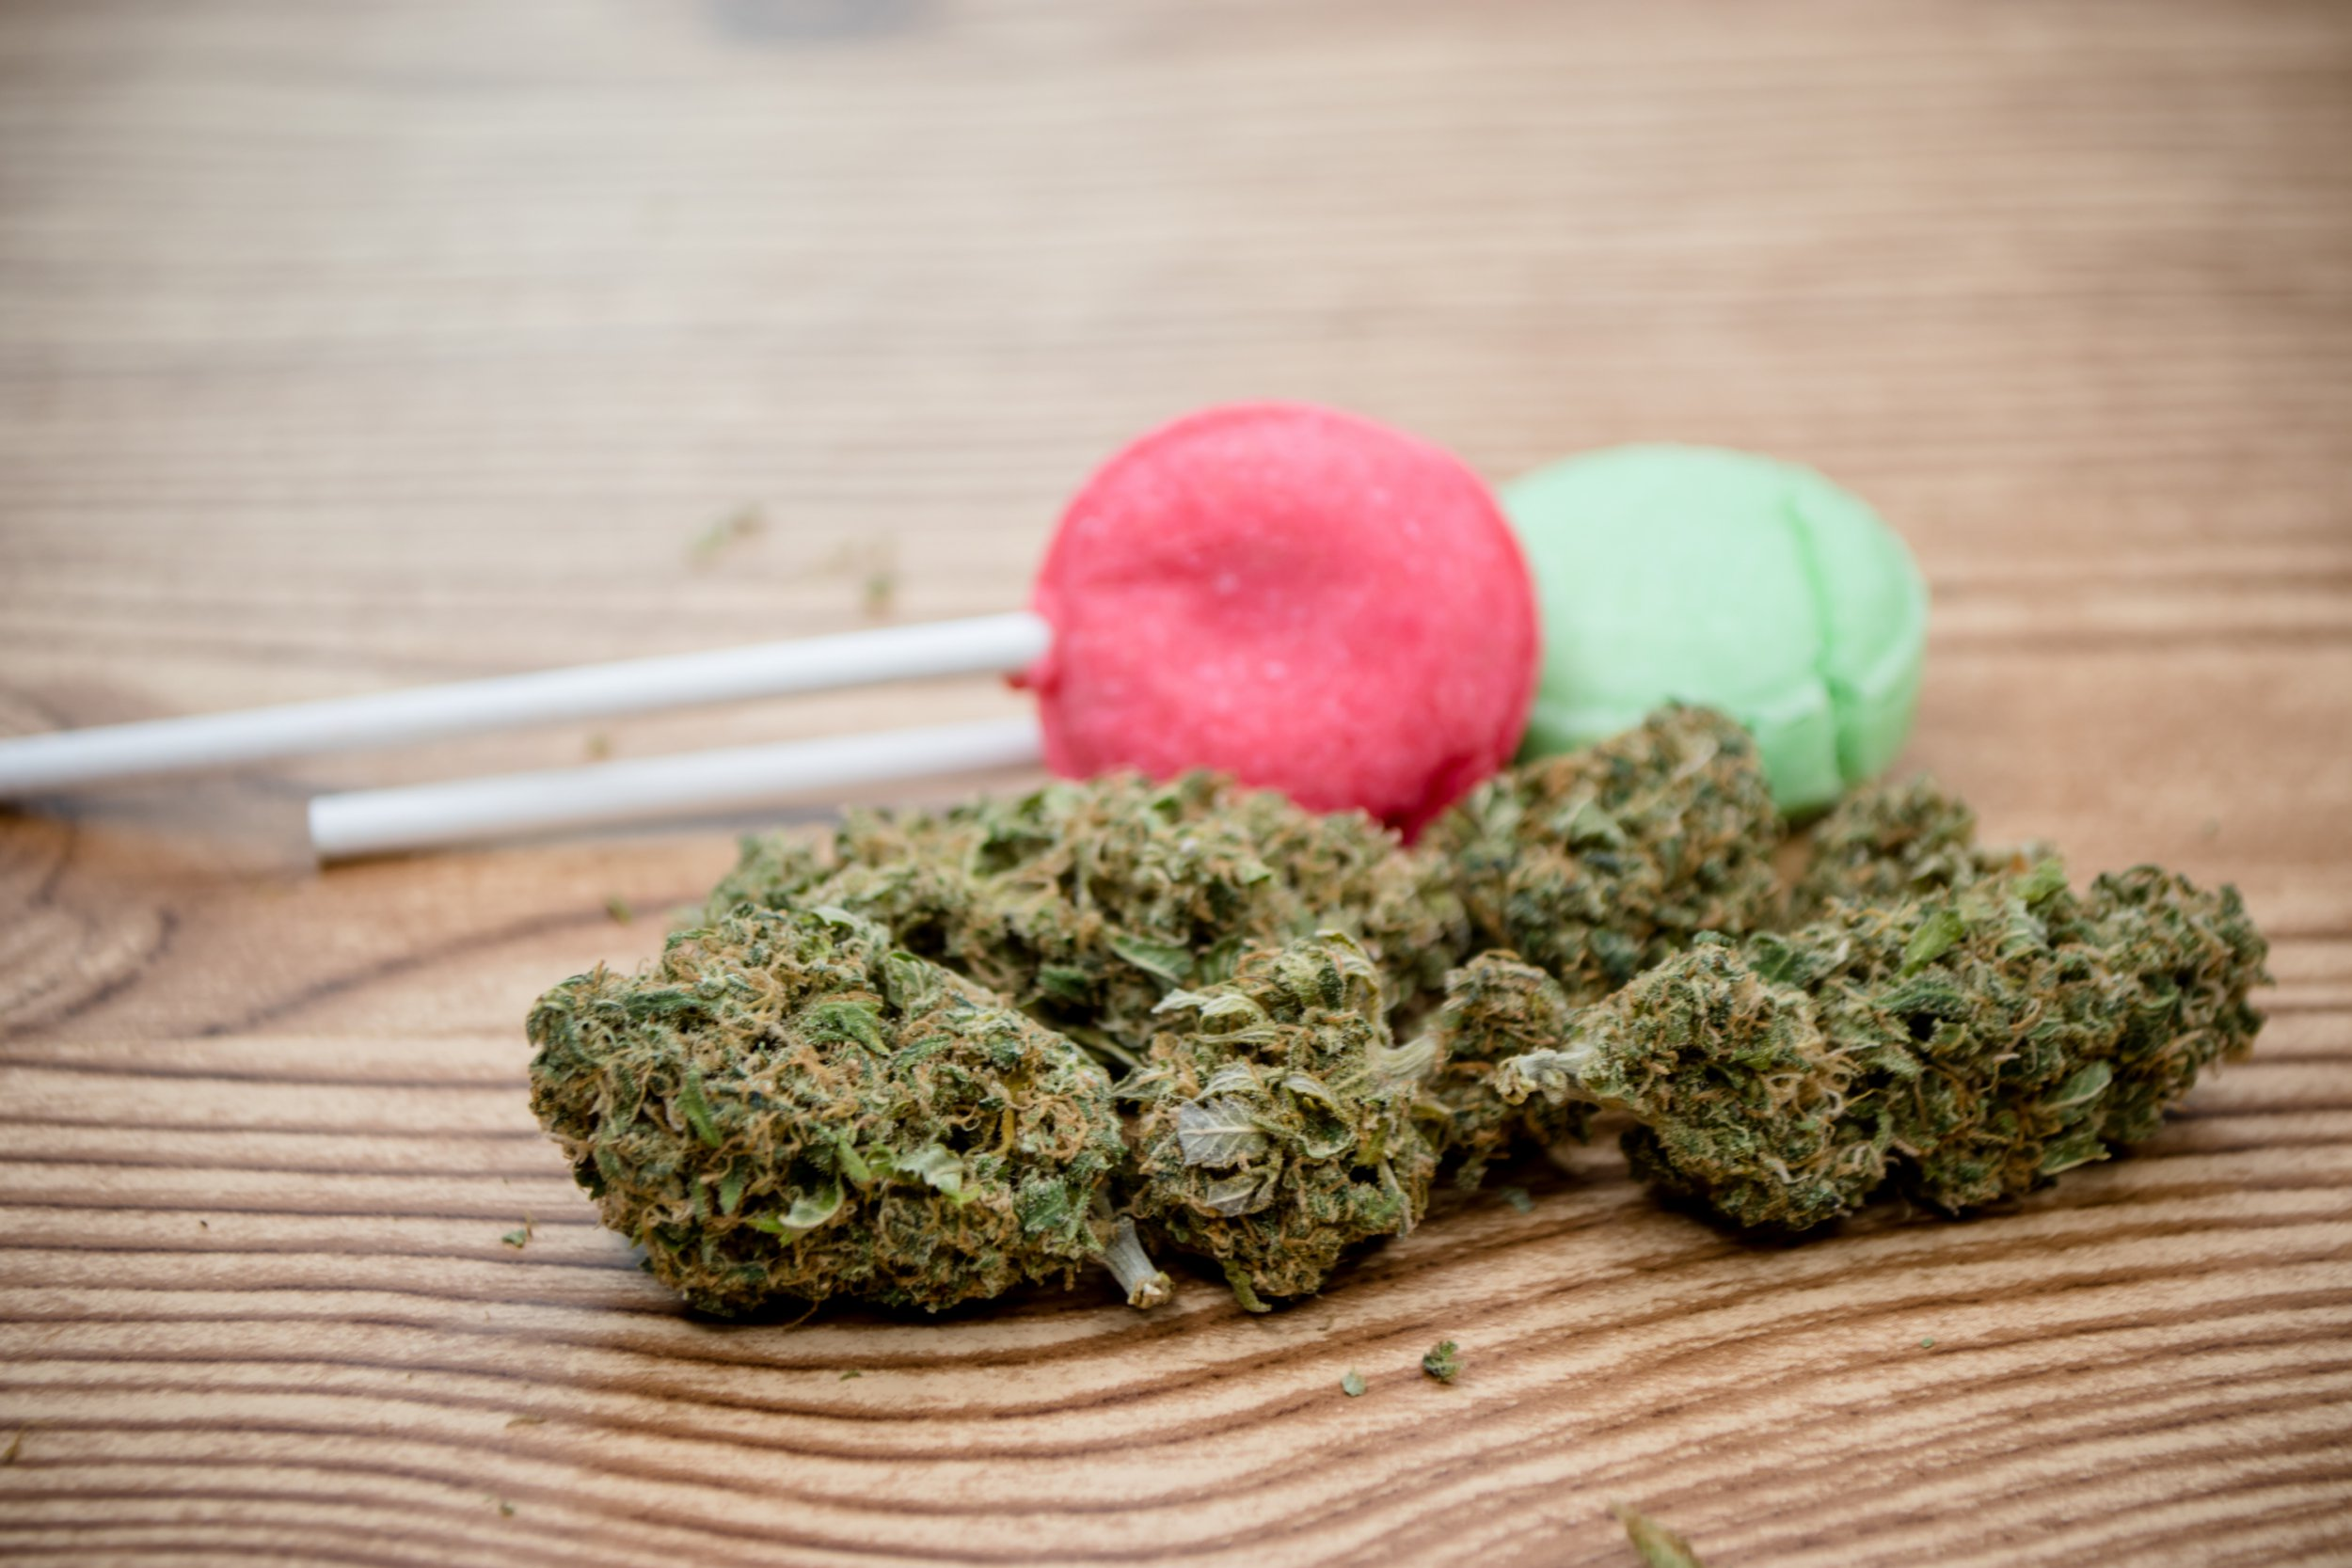 The legalisation of weed has a very expected effect on junk food sales, economist discovers